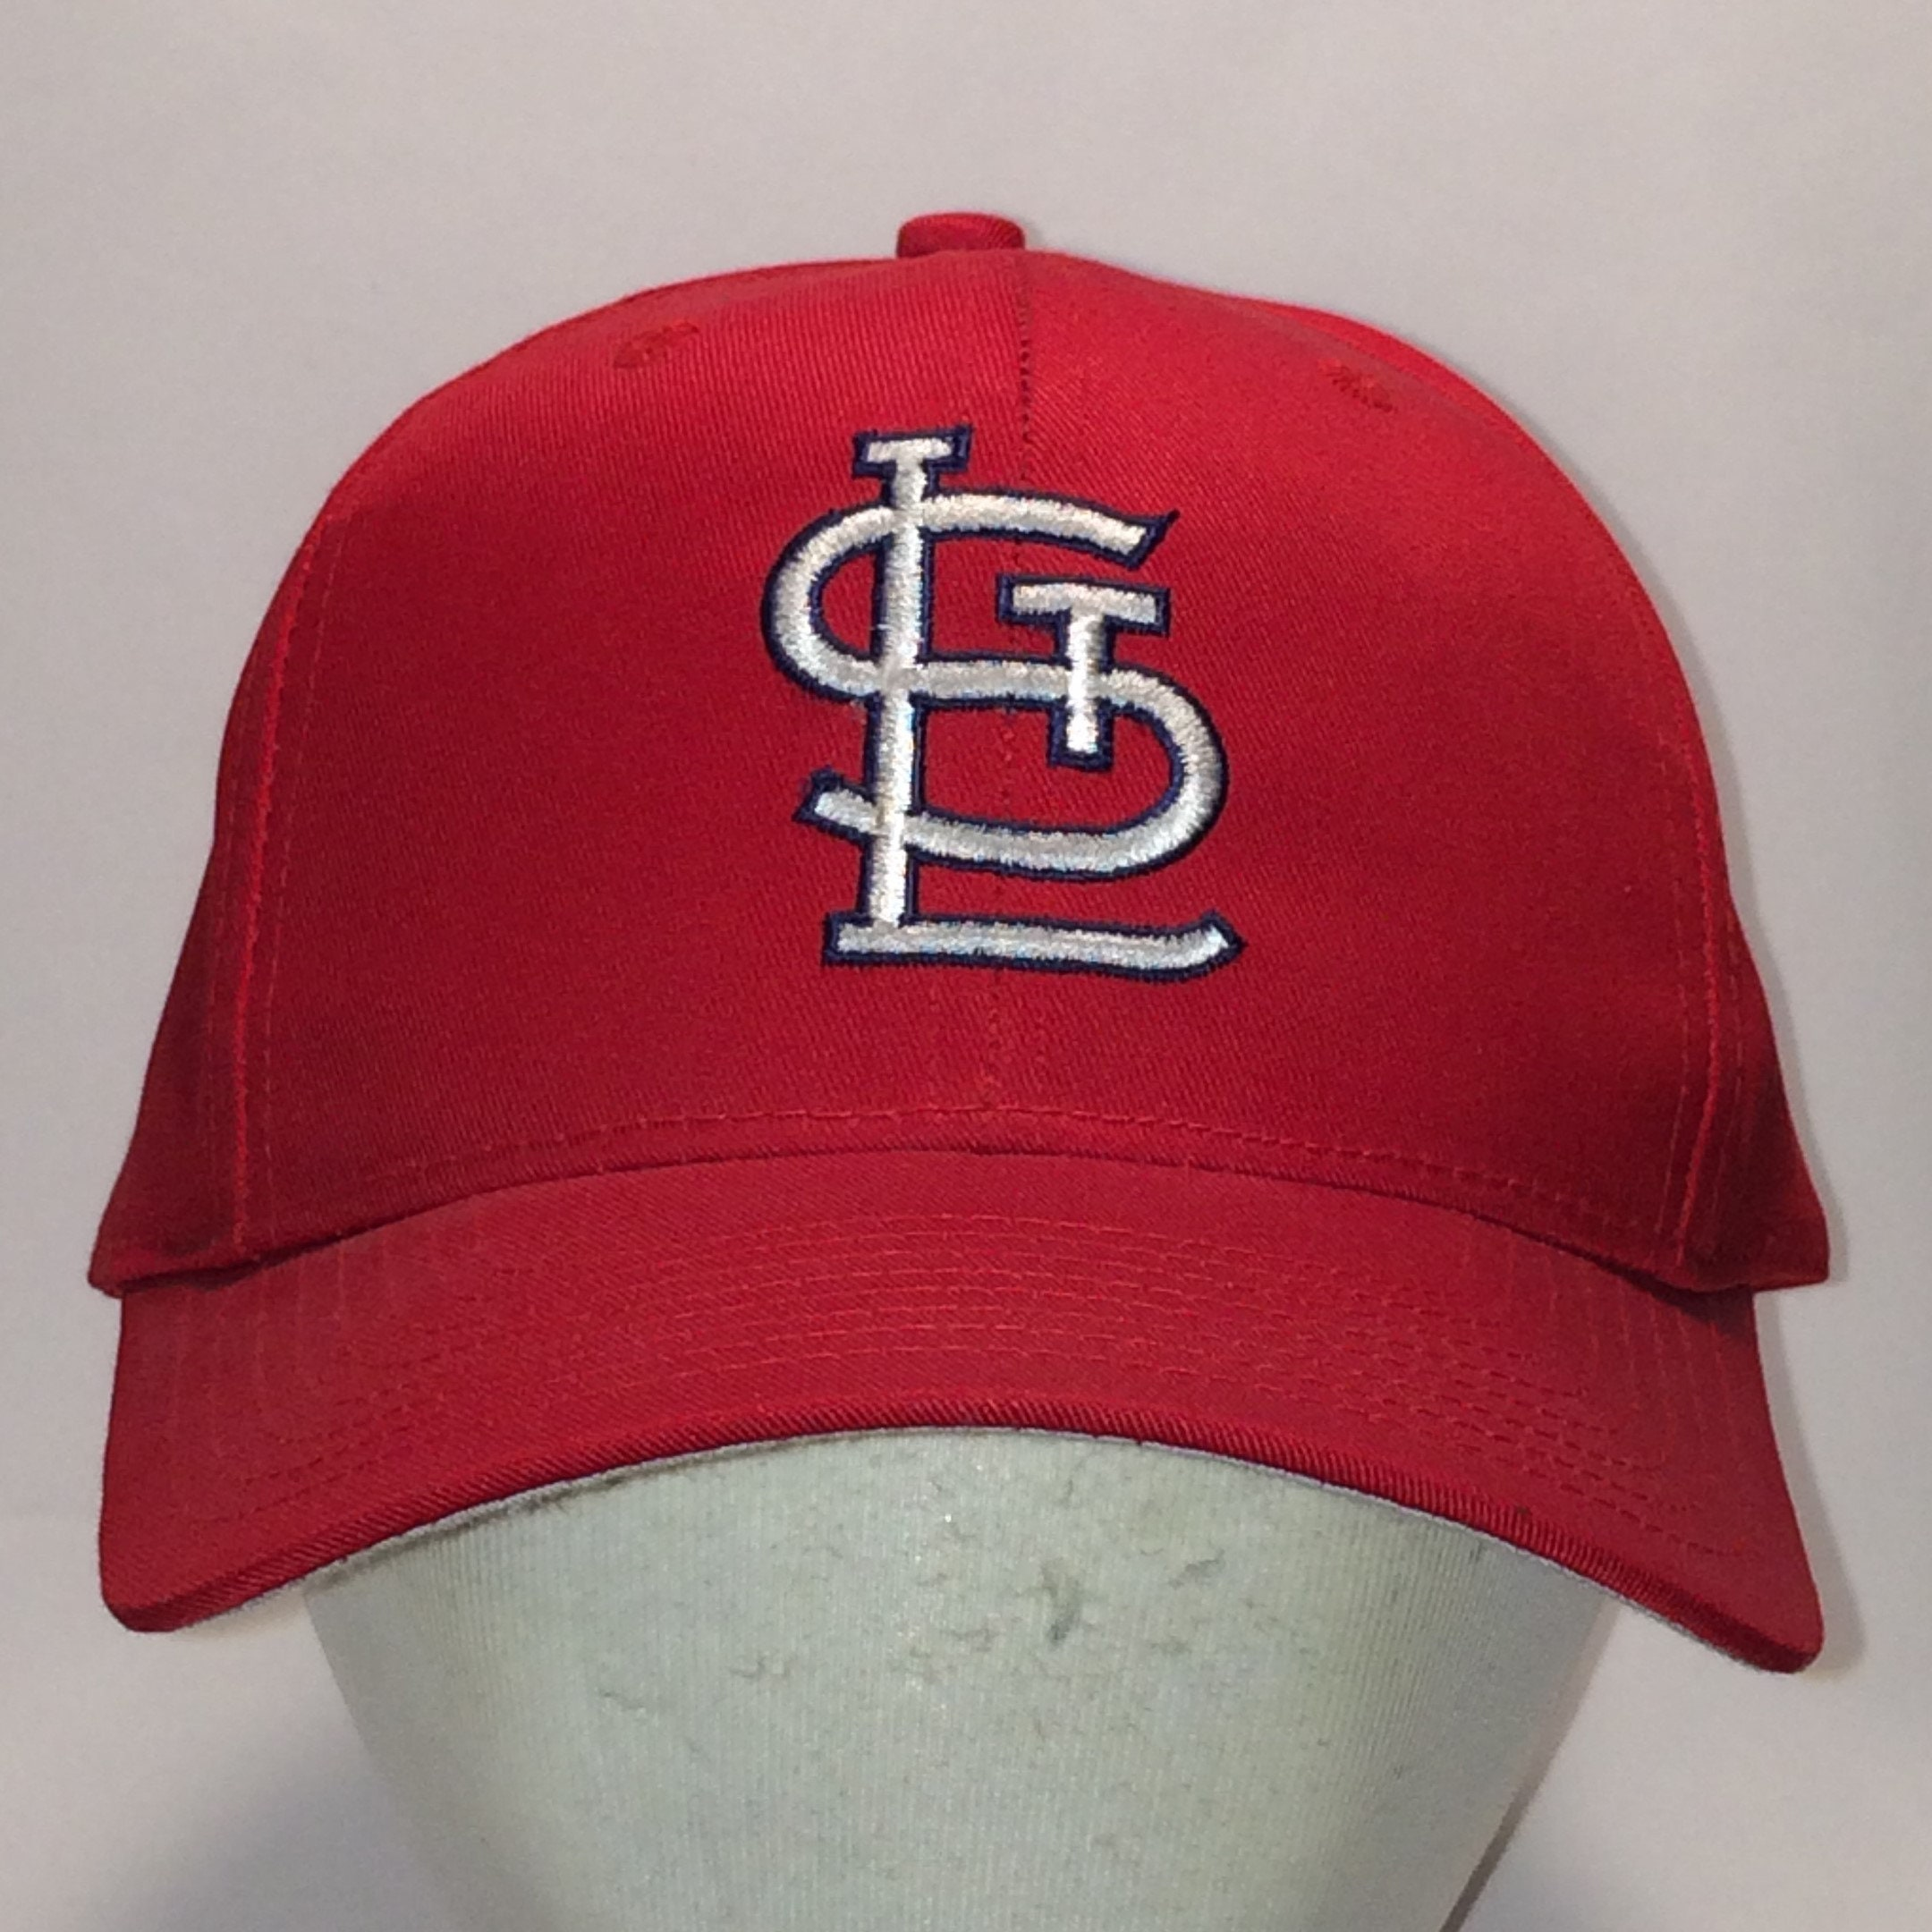 a4d8dd64 Vintage St Louis Cardinals Snapback Hat Logo 7 MLB Baseball Cap Red White  Sports Dad Hats Caps Gifts For Him T14 M7103